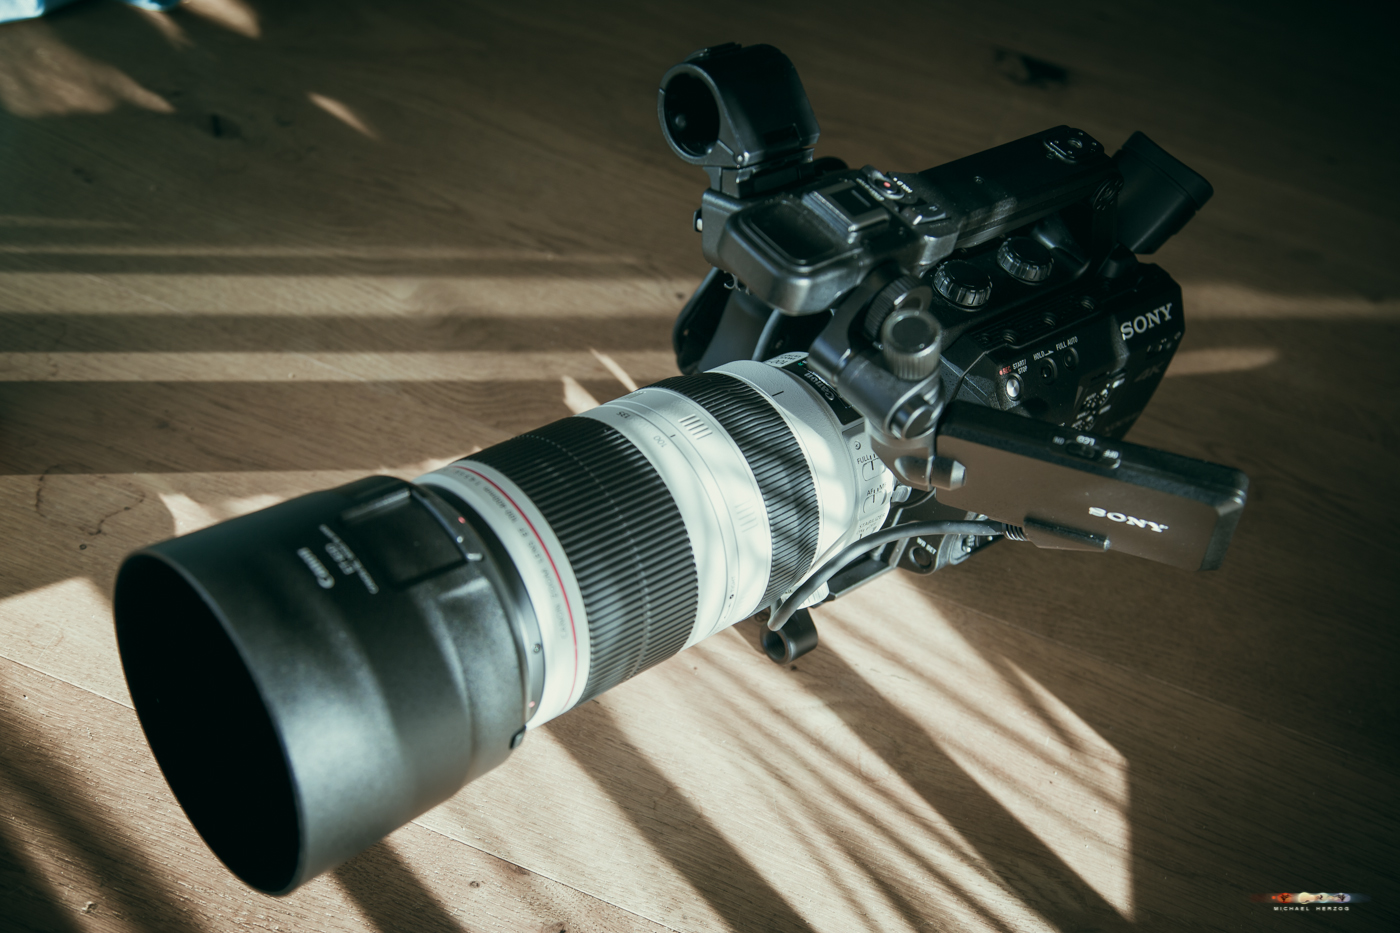 AUTrenalinMEDIA_equipment_canon400mm_foto_kücher-3304-2.jpg